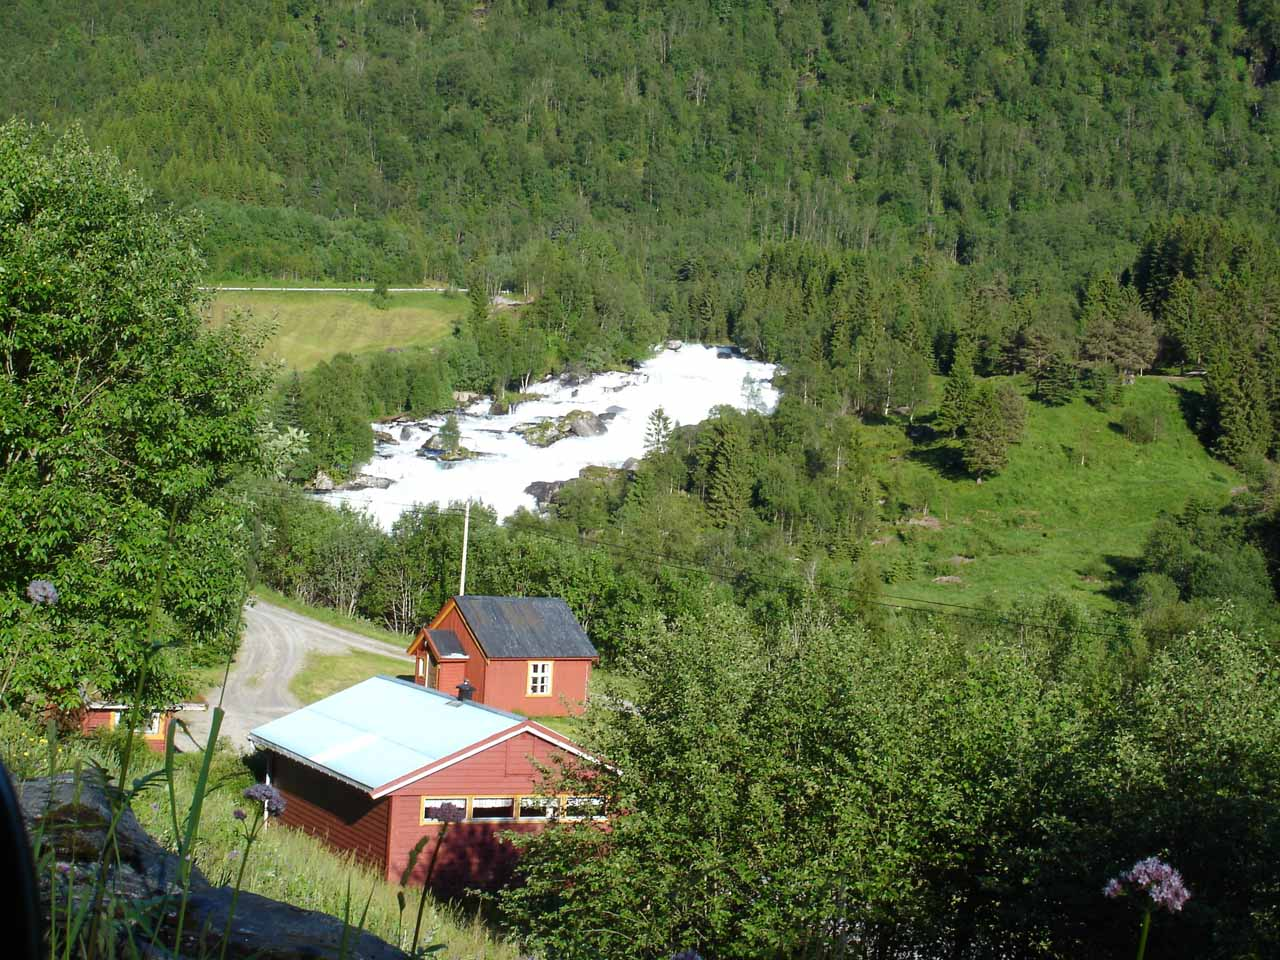 Some long and bright rapids fronted by farms that I think might be one view of Vallestadfossen